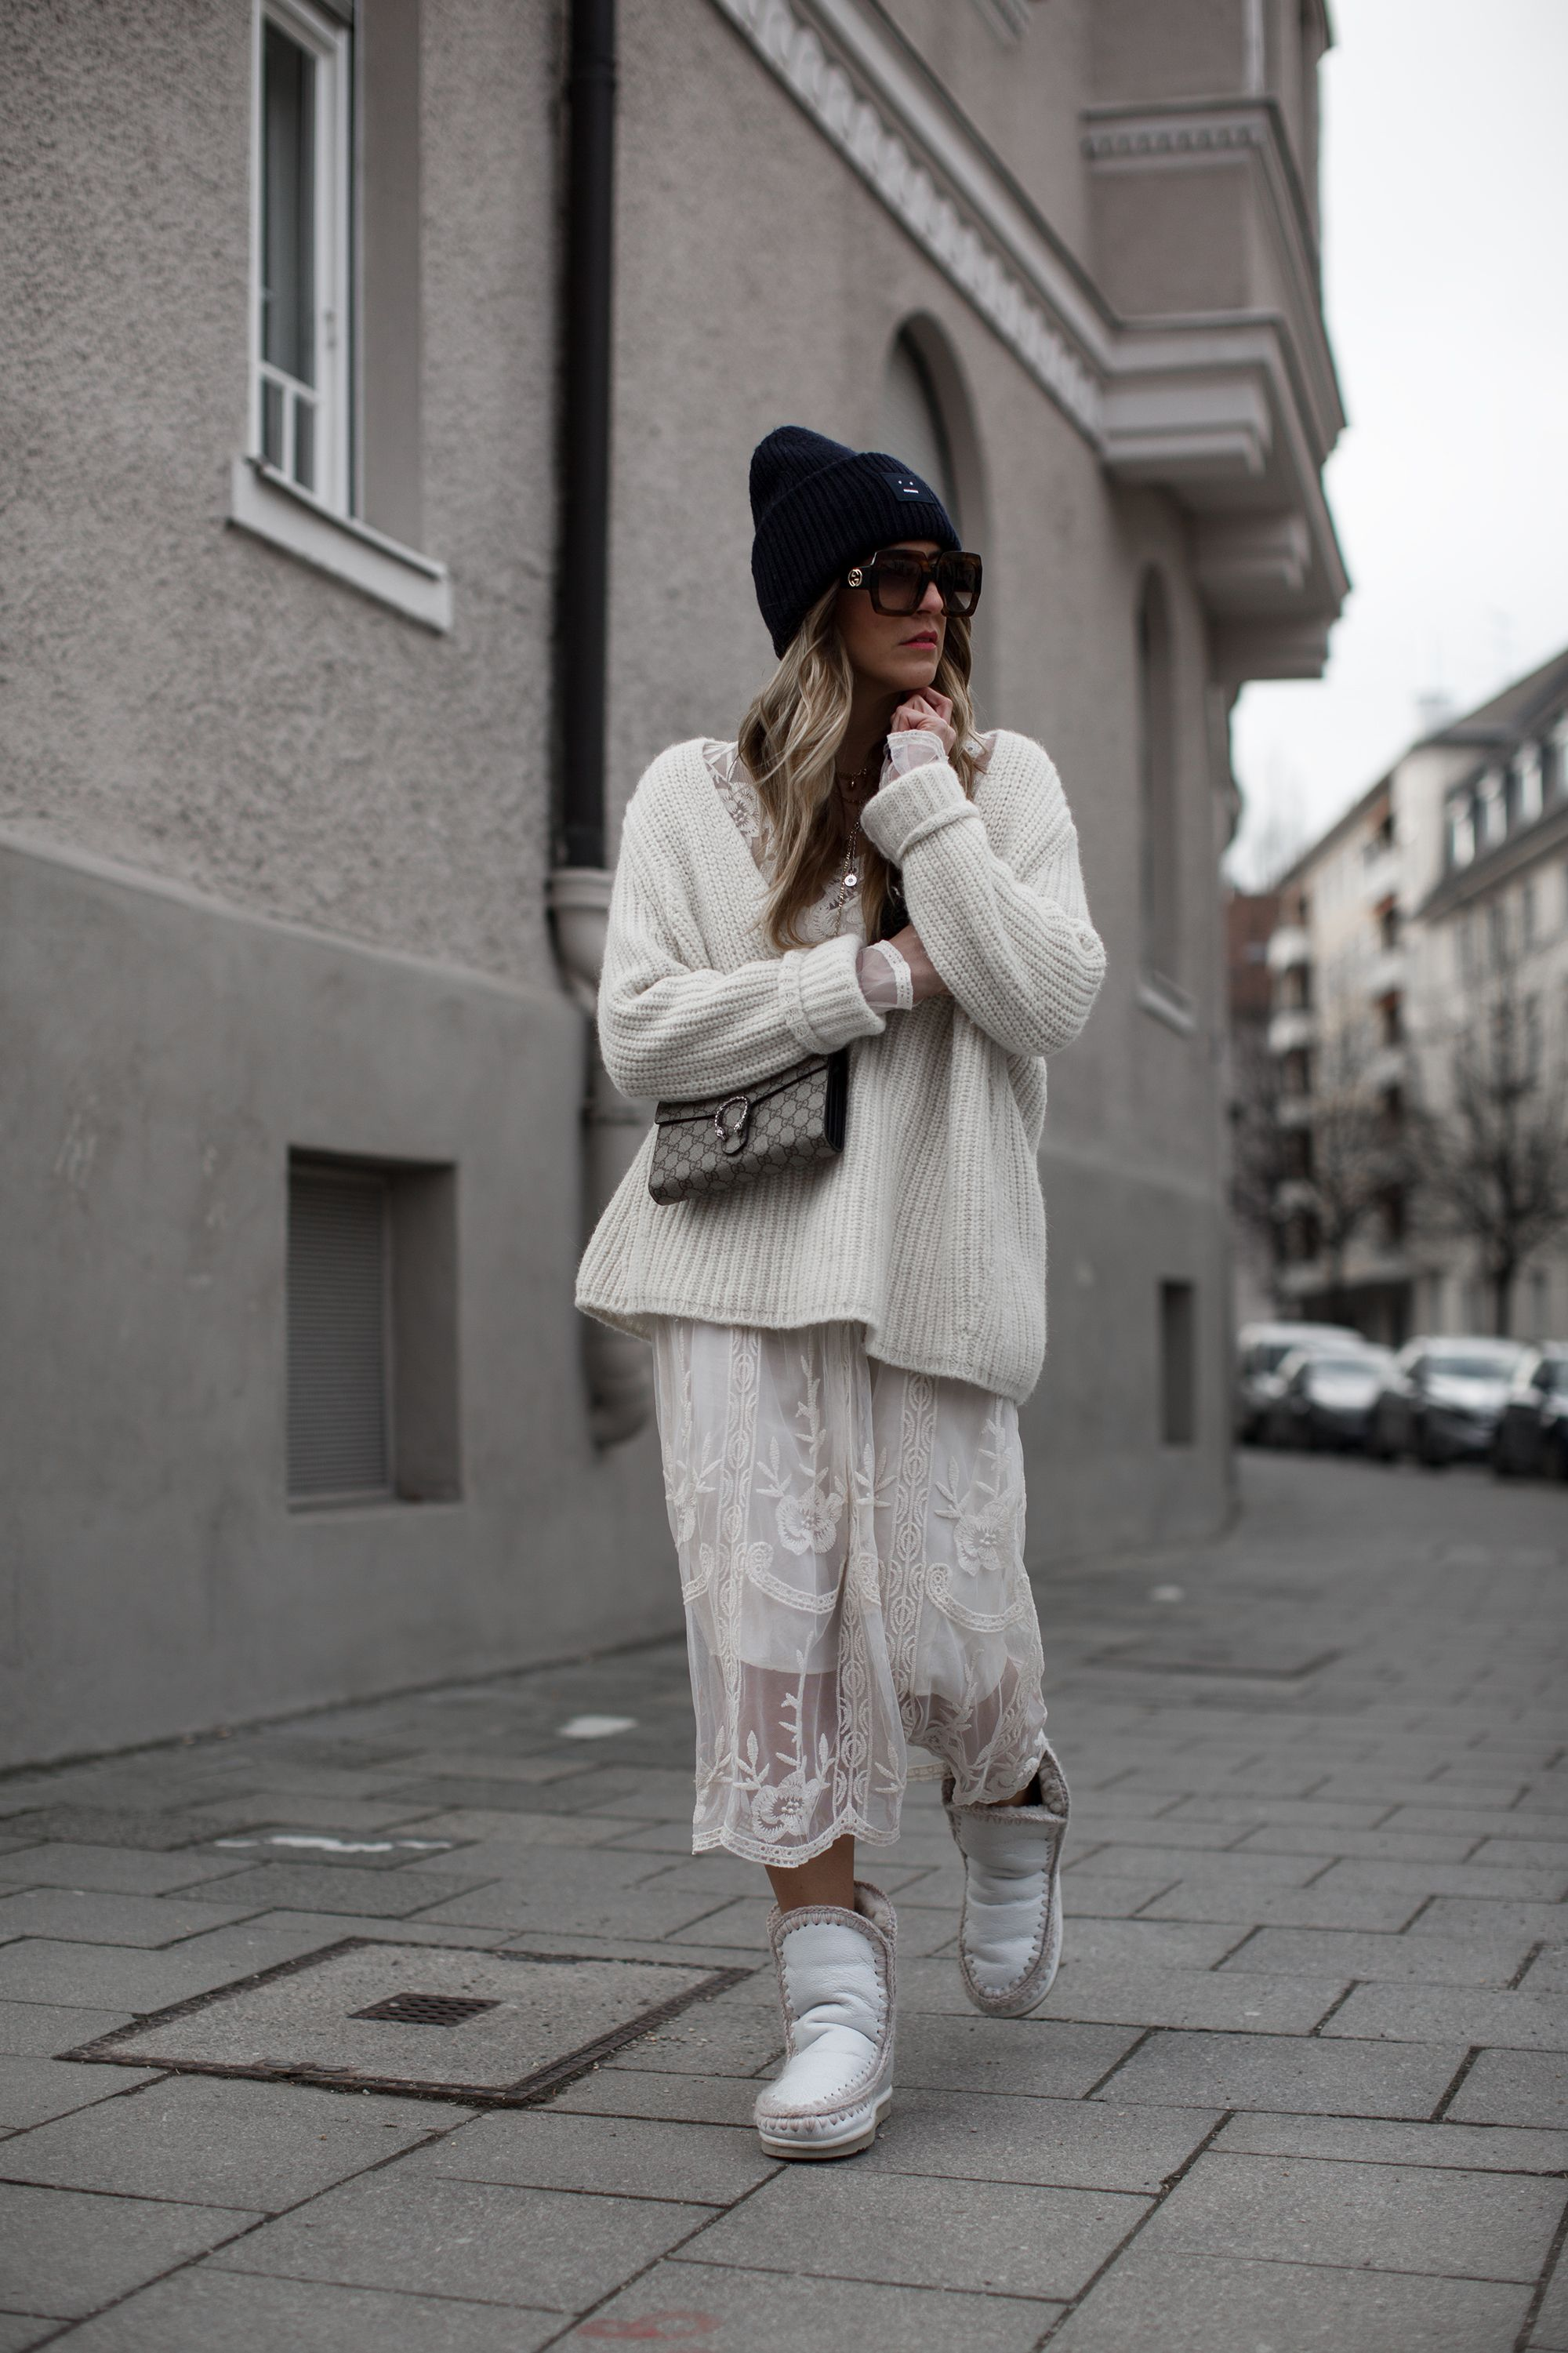 black palms lace dress mou boots white winter outfit